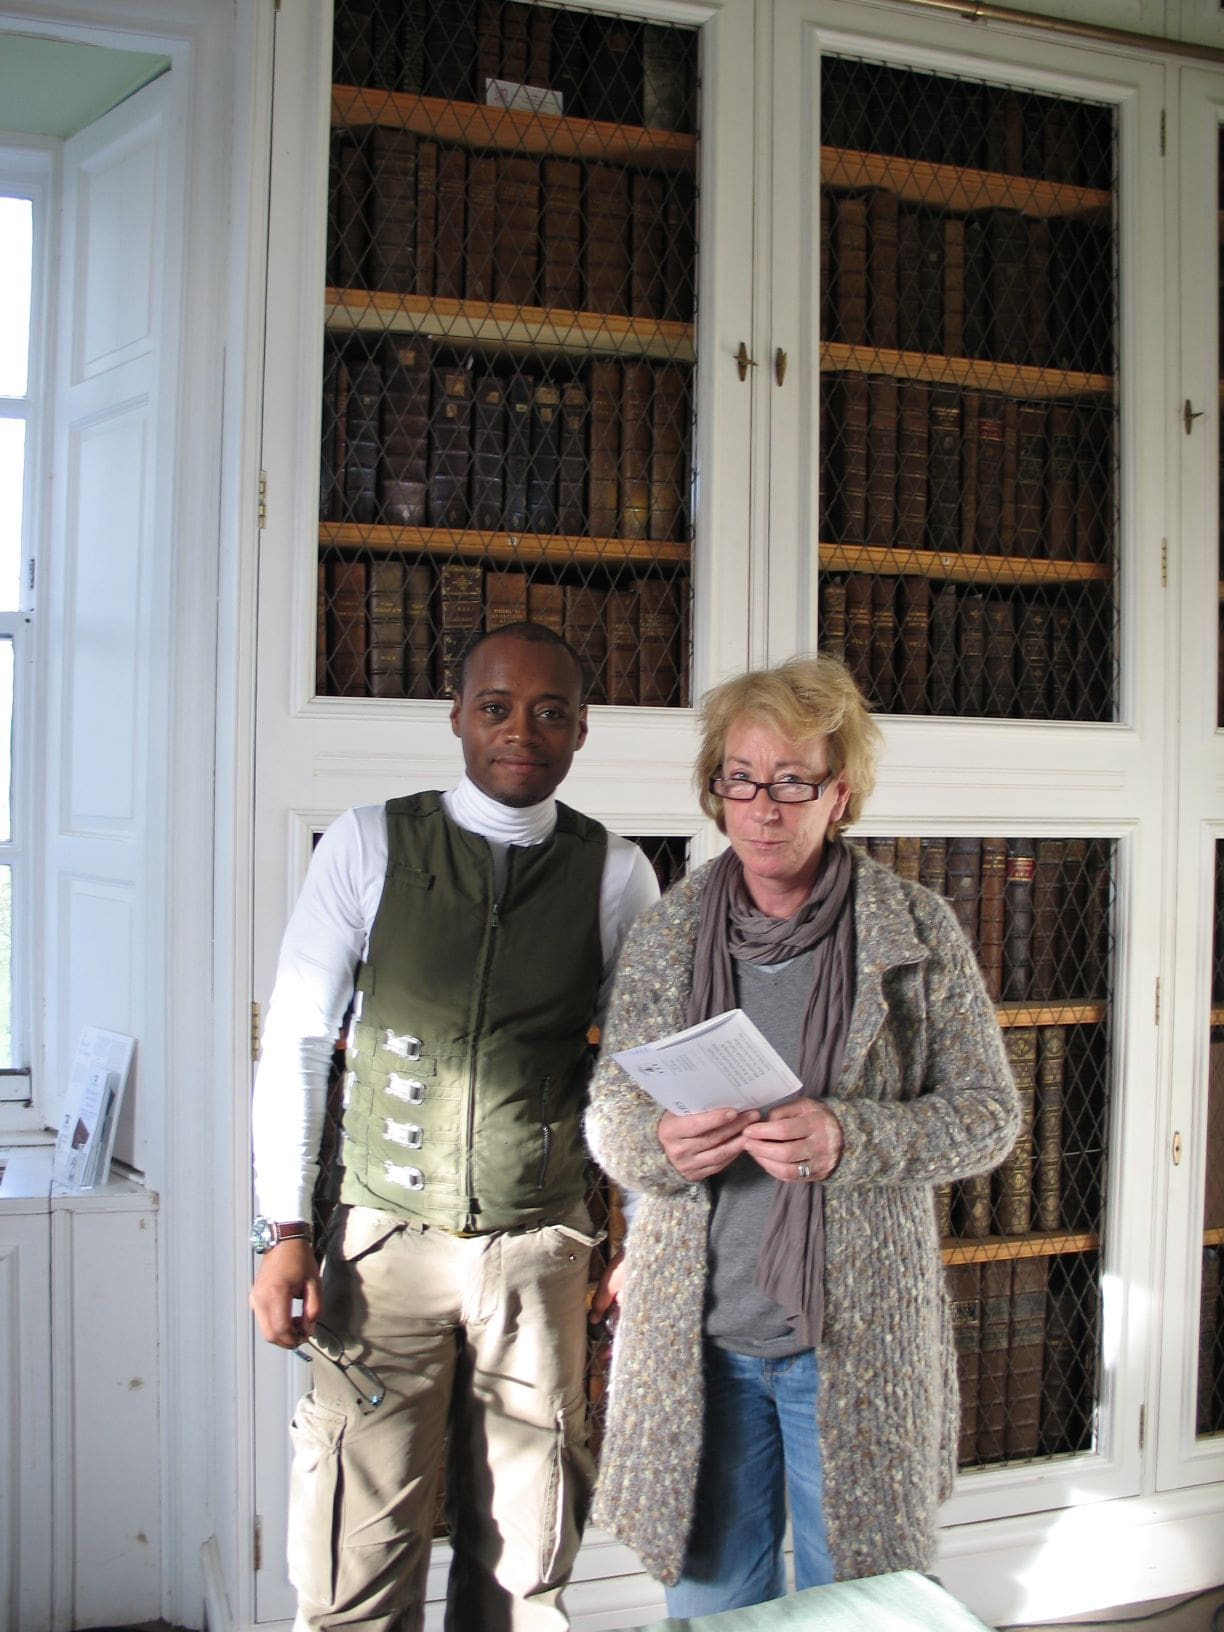 Actors Fraser James and Ellie Haddington on location at Innerpeffray Library.